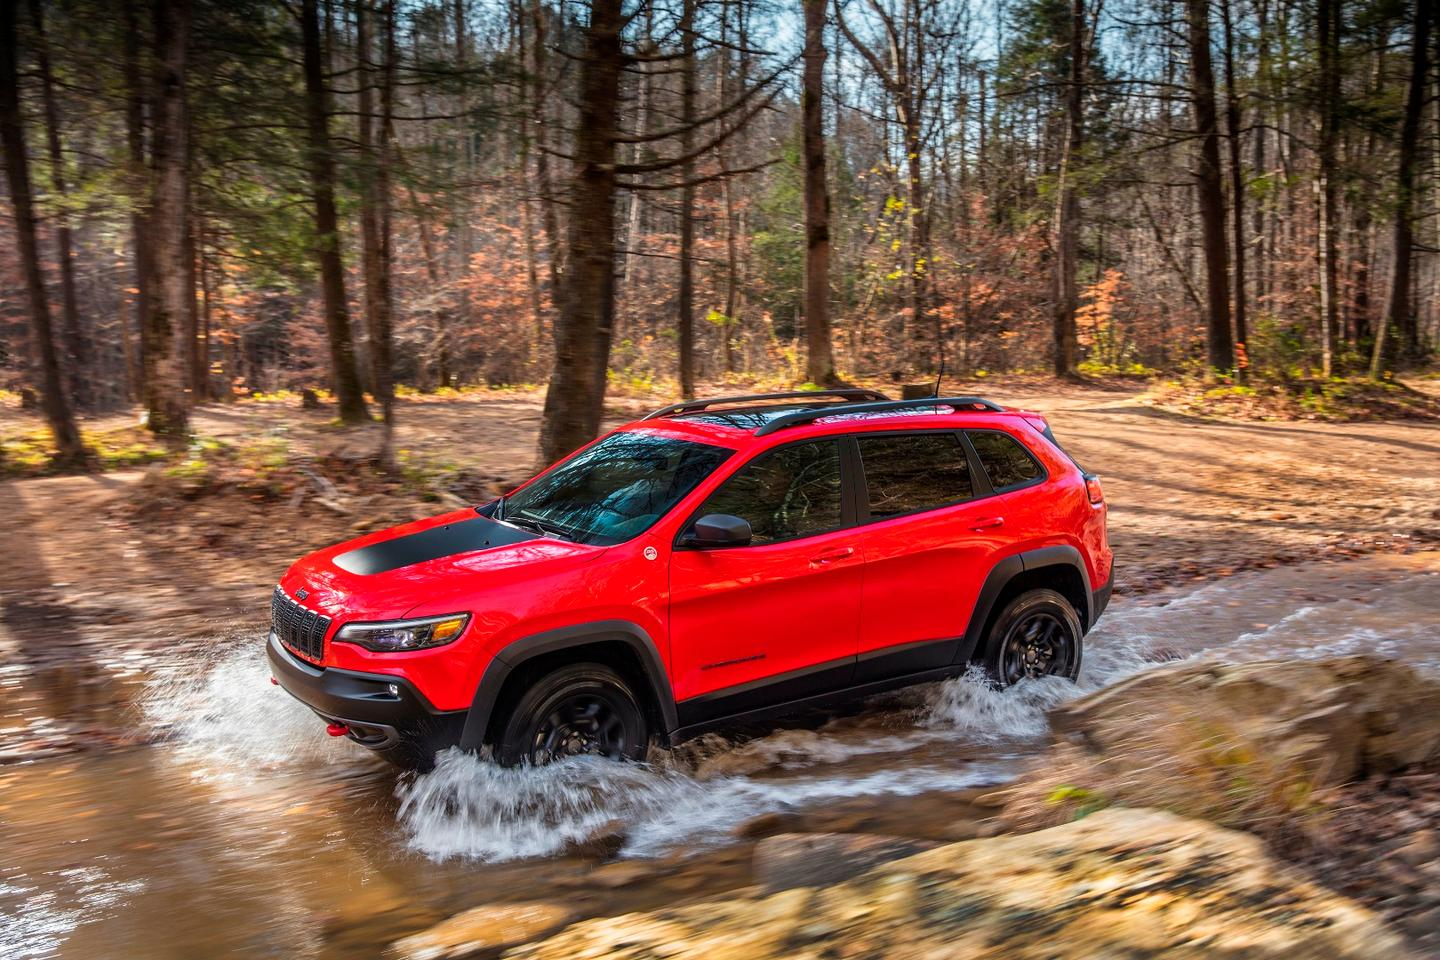 For serious off-road capability, the 2019 Jeep Cherokee's already good off-pavement skills are improved with the Trailhawk model